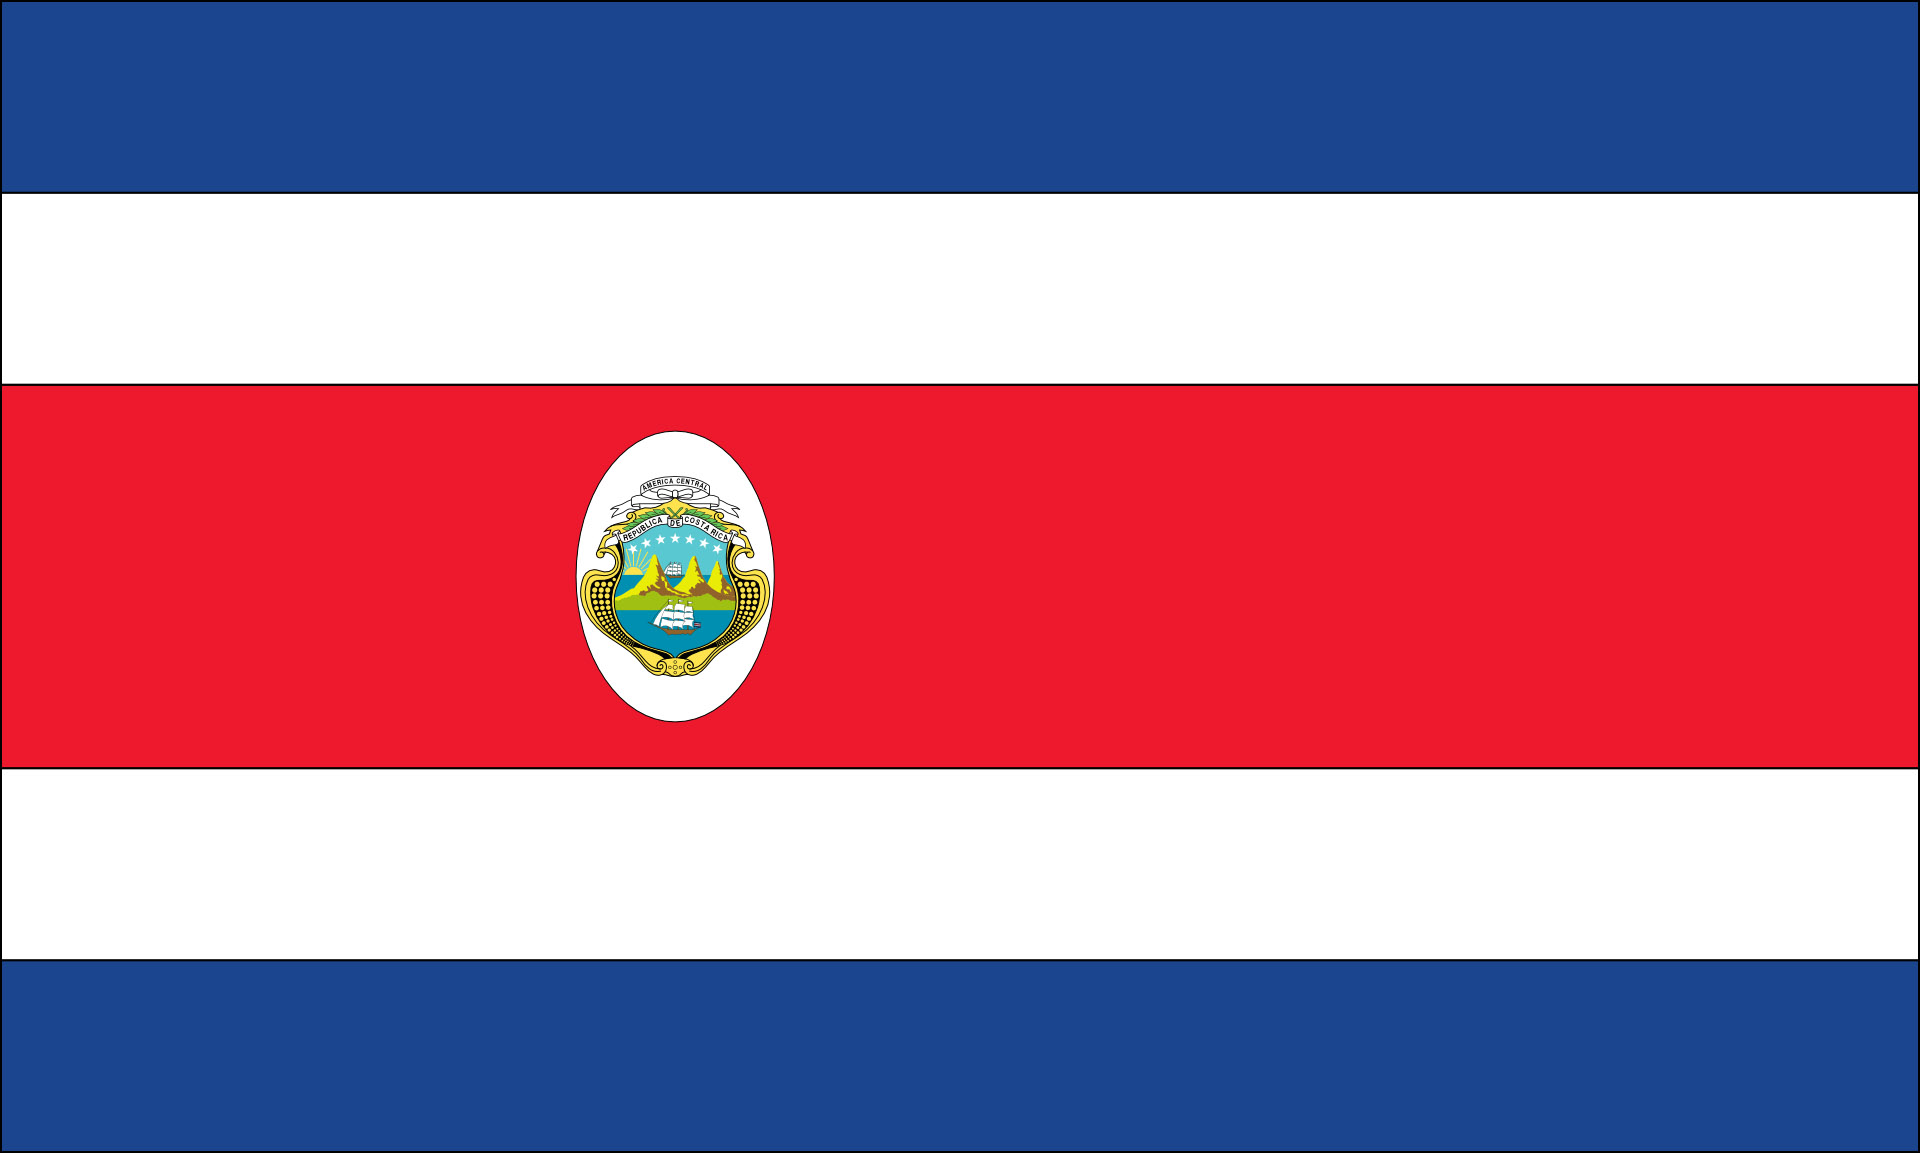 Flag of Costa Rica image - Free stock photo - Public Domain photo ...